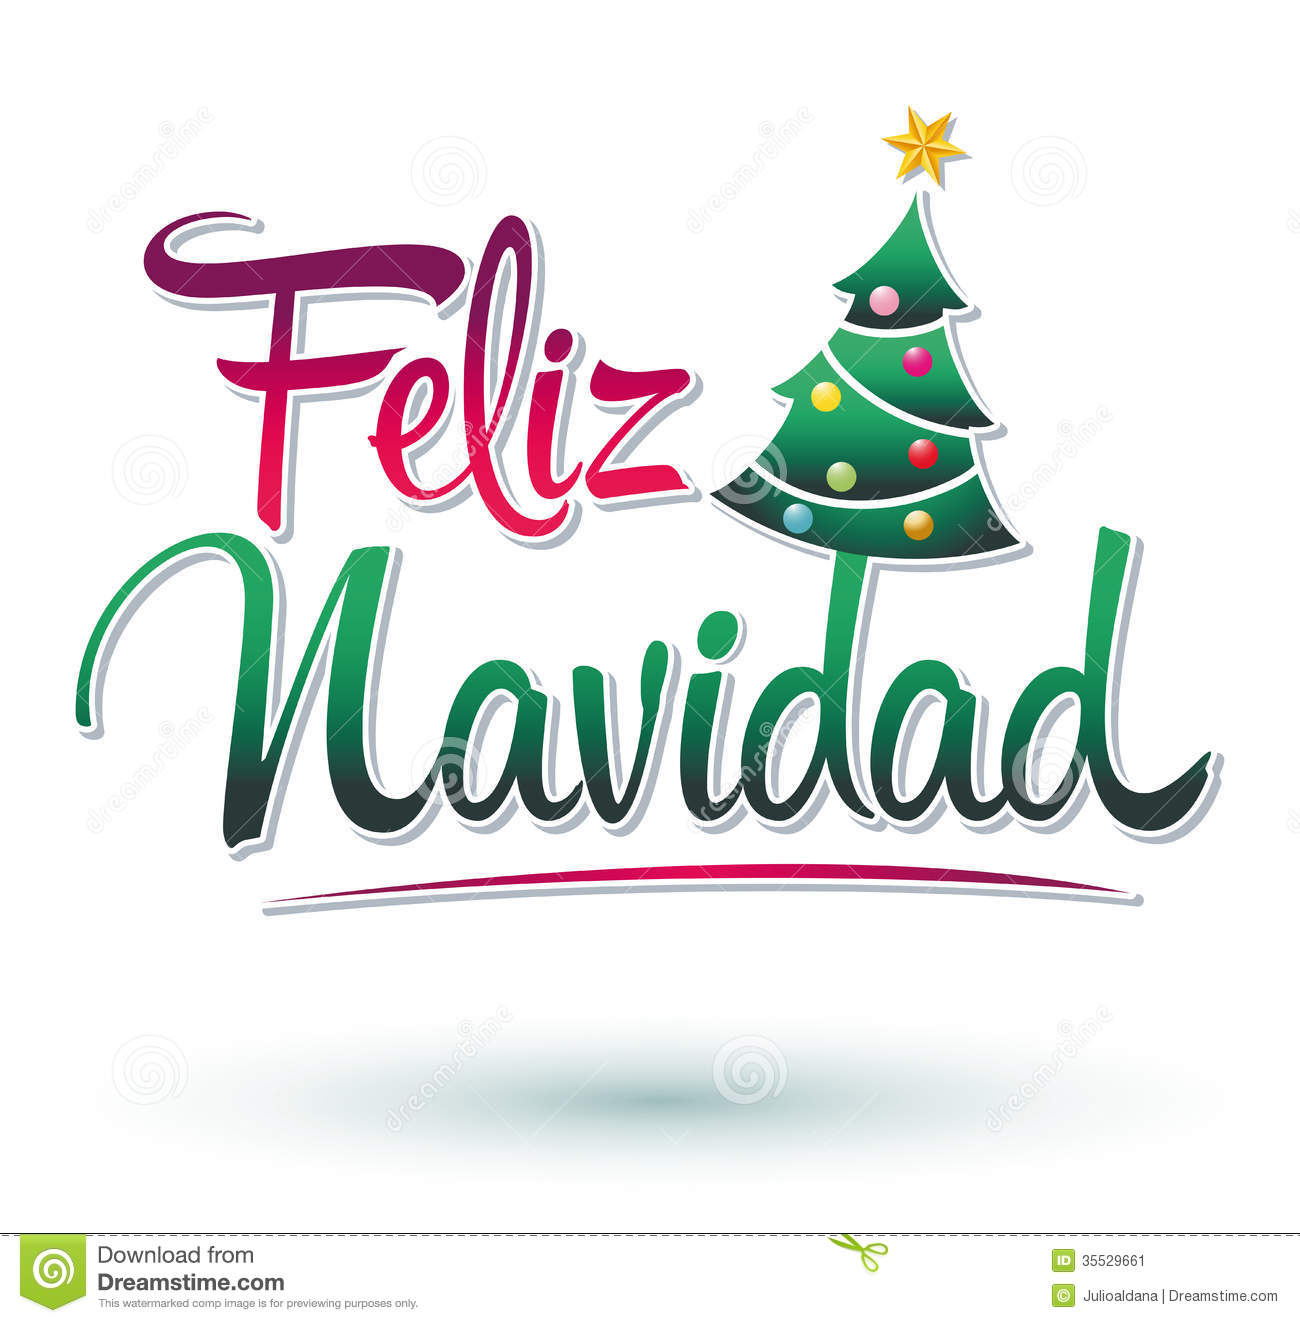 Feliz navidad christmas lyrics & mp3 download – christian music.